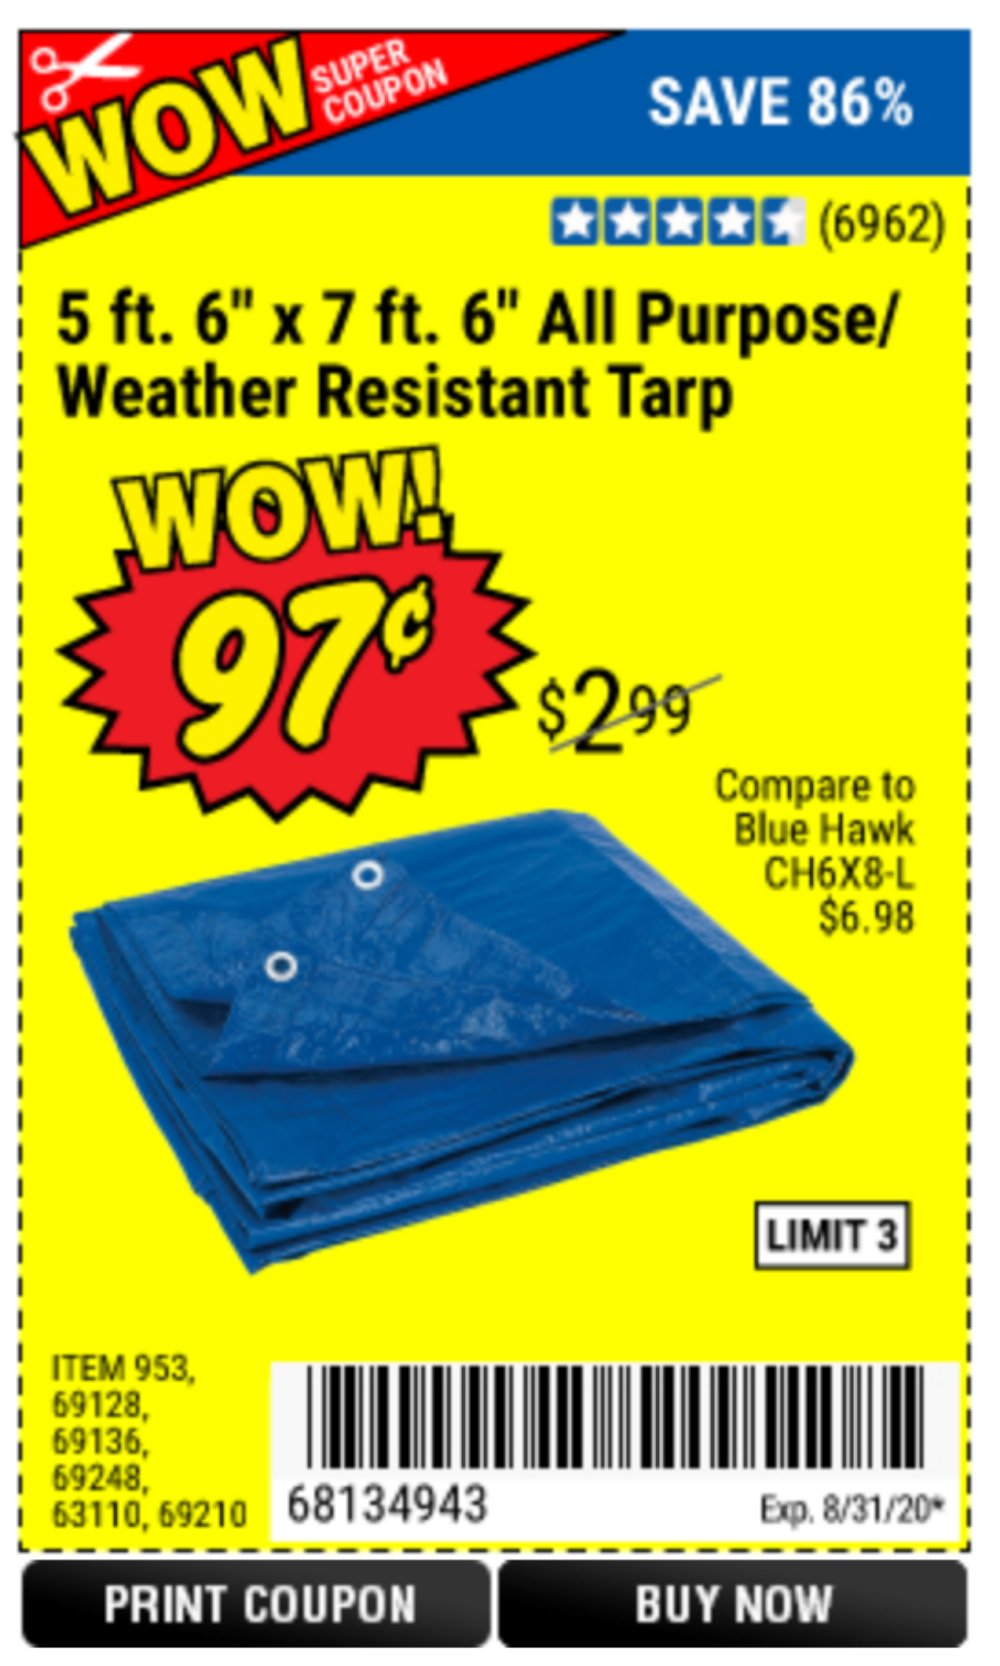 Harbor Freight Coupon, HF Coupons - Free All Purpose Tarp with Purchase through 3/1/20